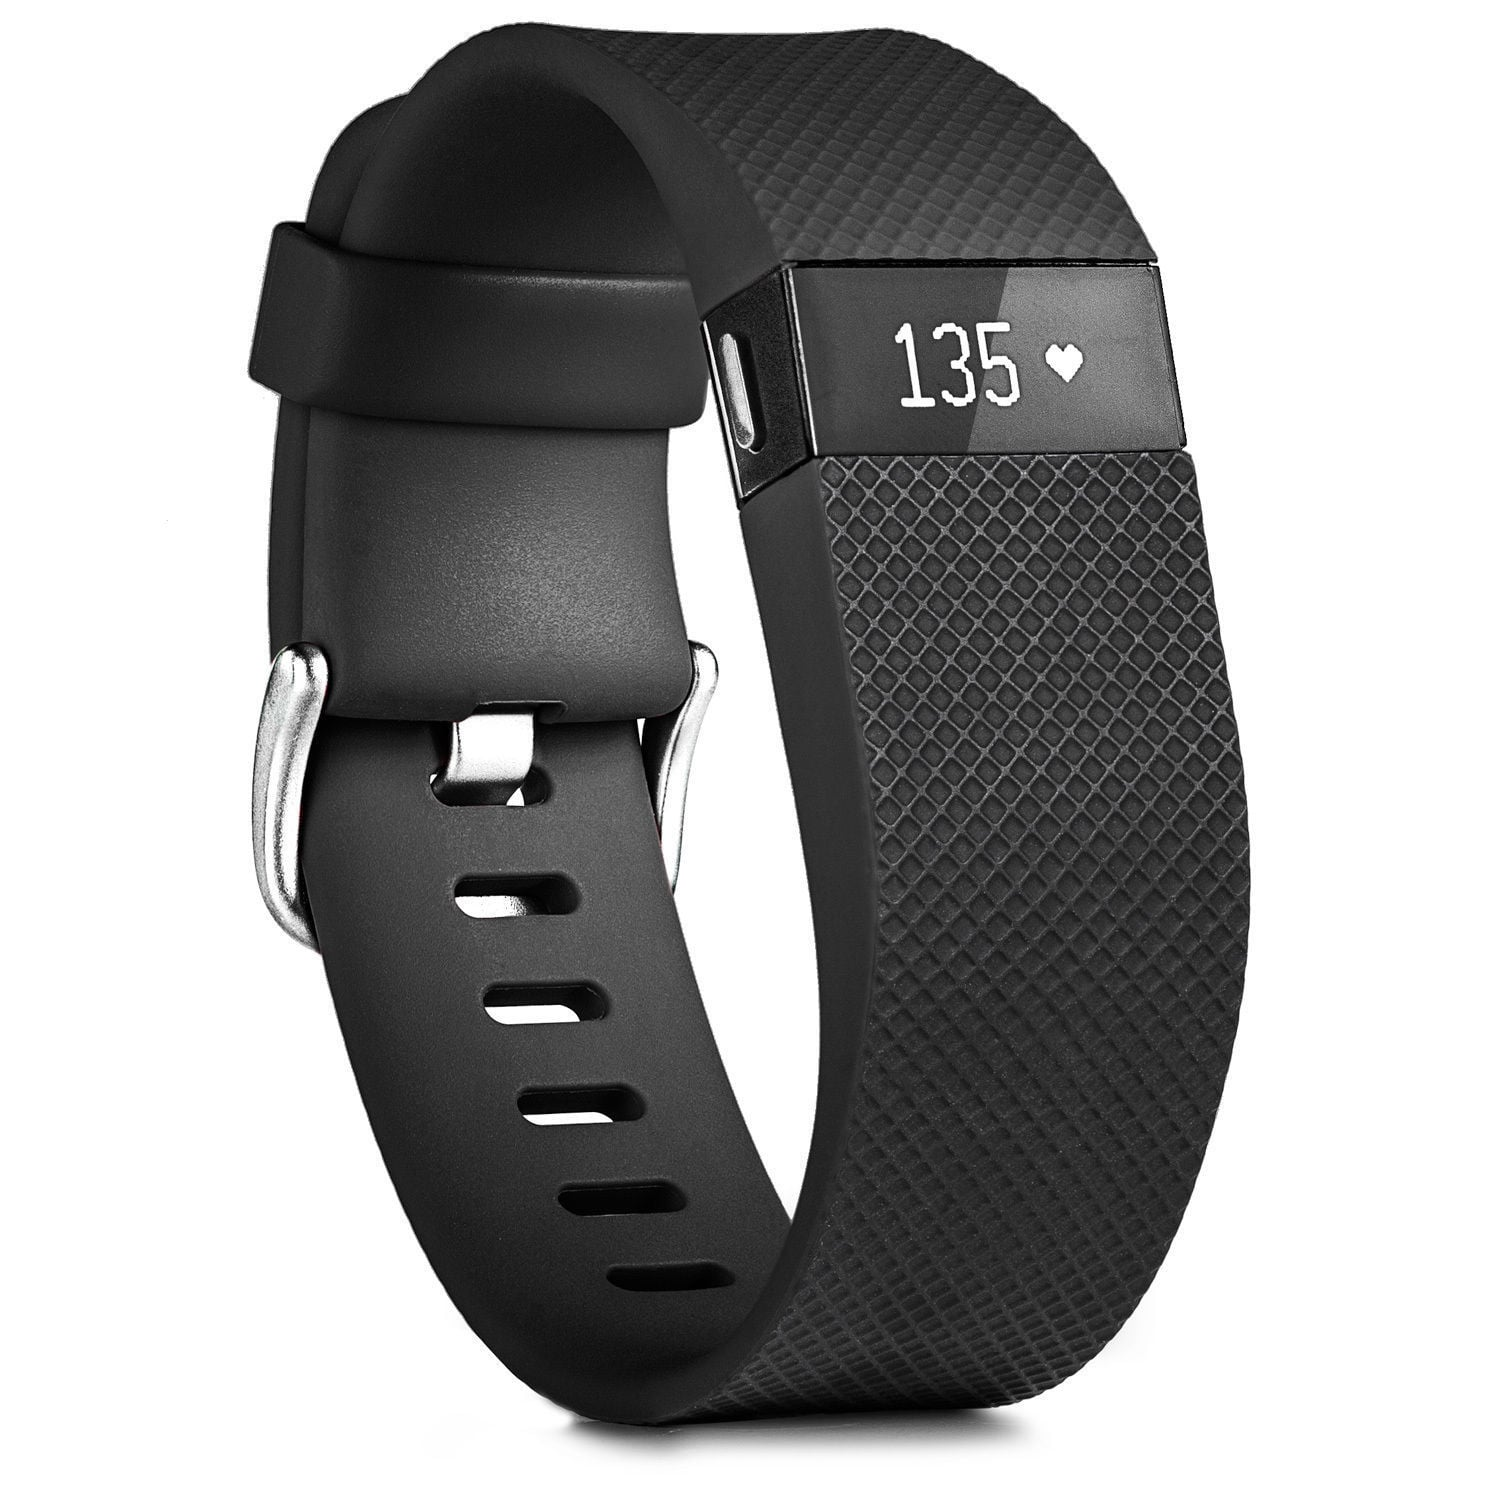 Fitbit Charge Heart Rate Activity + Sleep Wristband – 45% off: $89.99